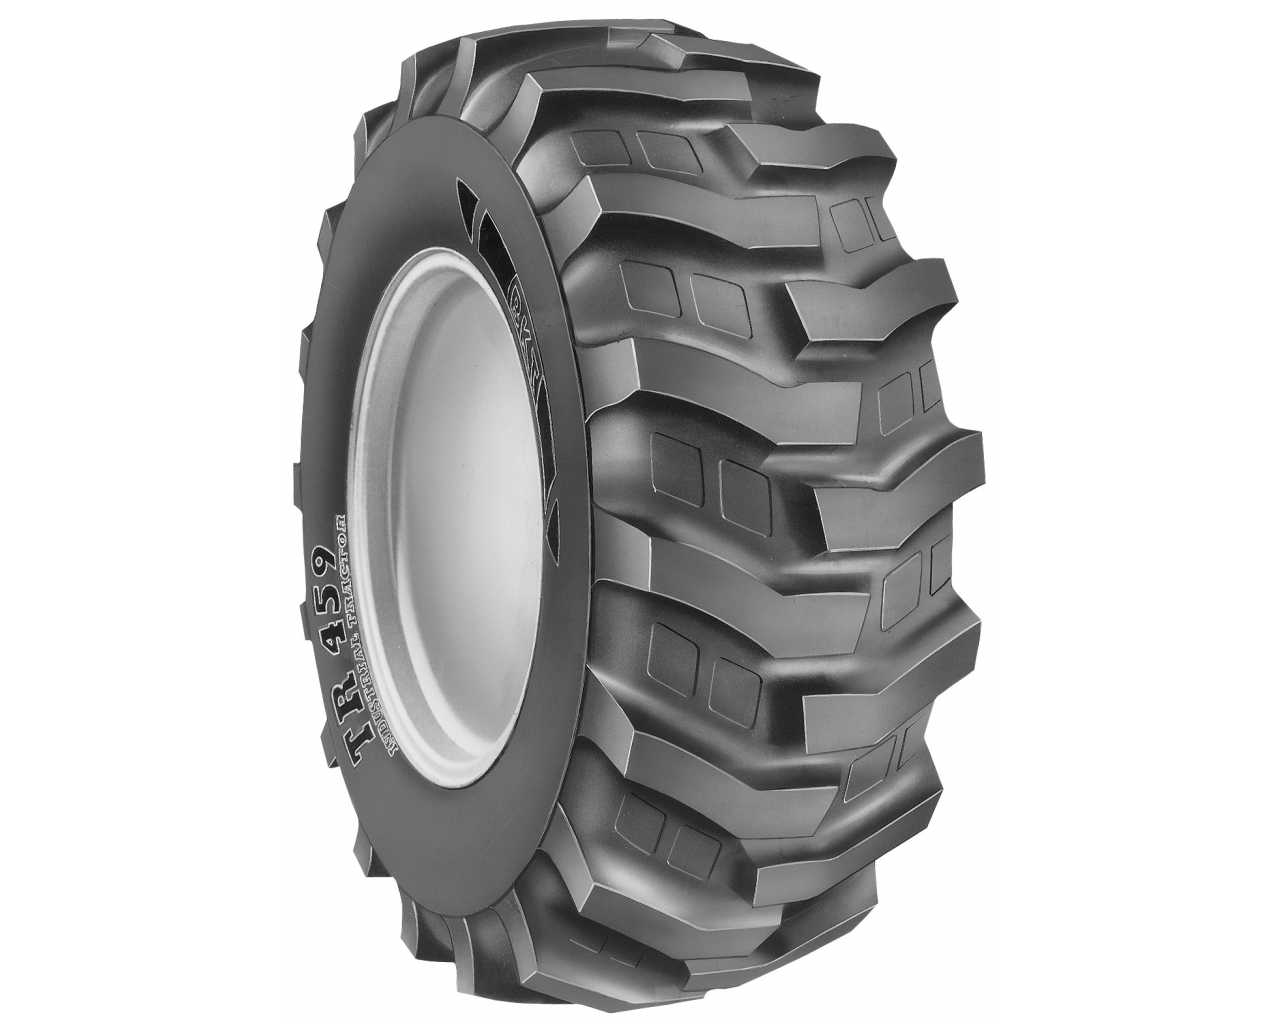 16.9X28 BKT TR-459 12PR TL - Buy online at Agrigear, Ireland's tyre and  wheel specialists